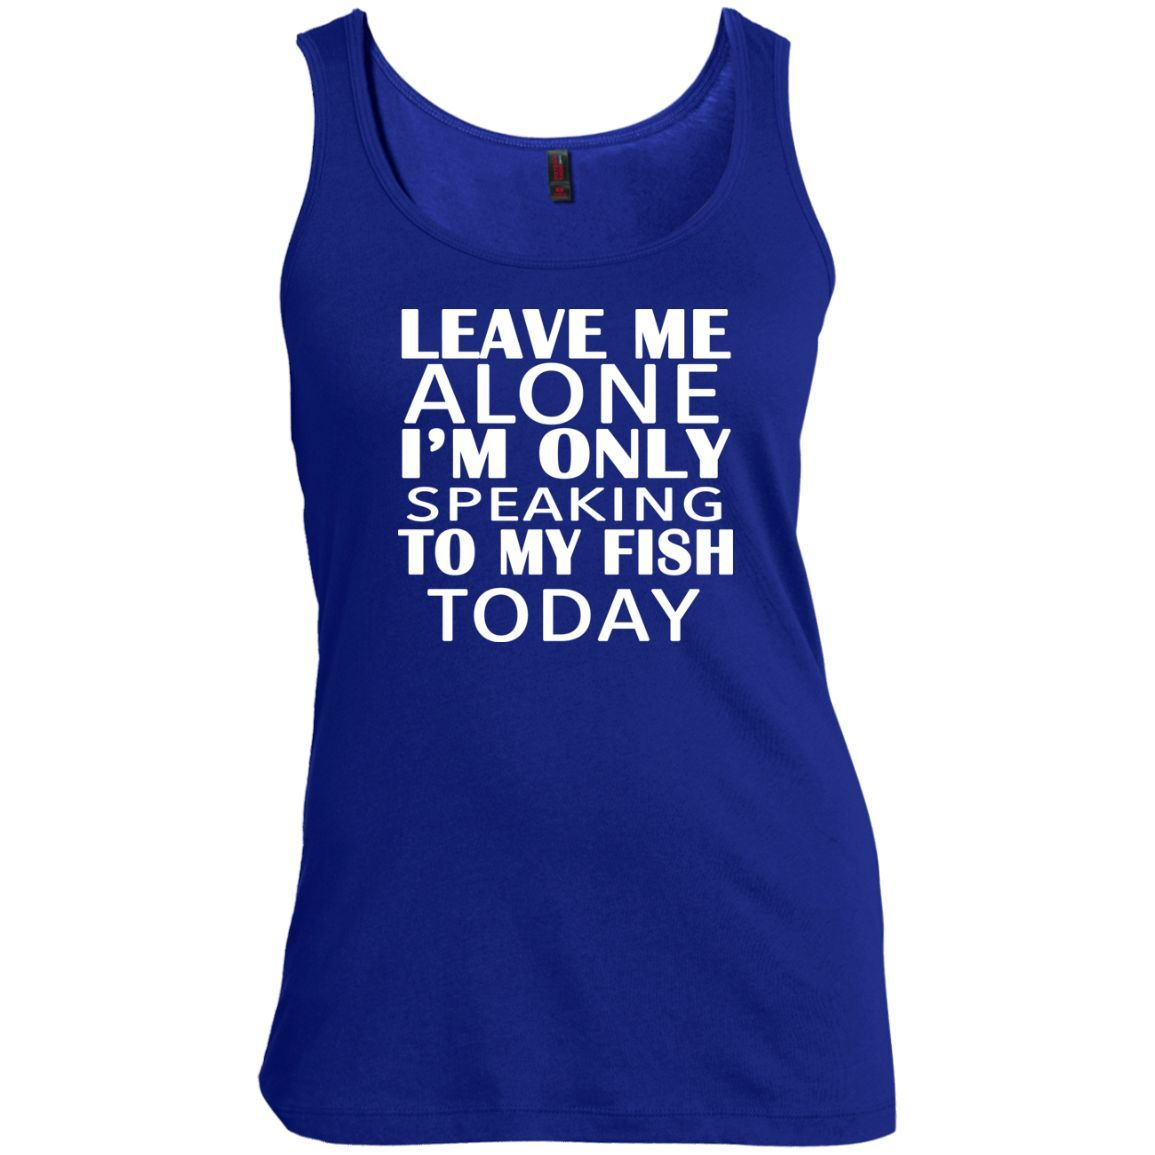 Leave Me Alone Im Only Speaking To My Fish Today Scoop Neck Tanks